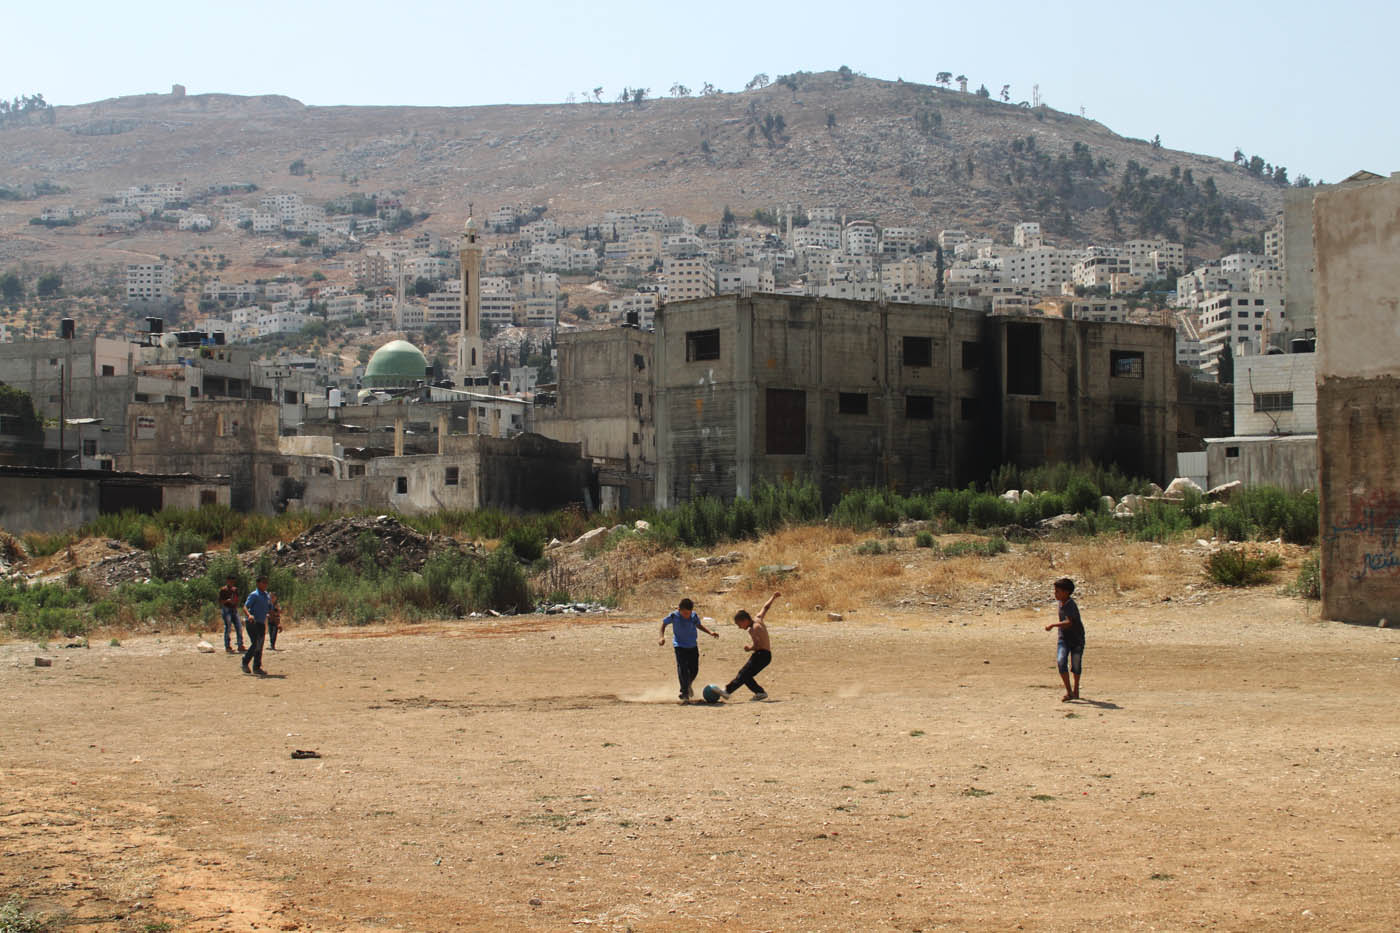 West Bank is among top 20 most populated places in the world. Distances between houses in Balata refugee camp are not more than 1.5 meters in average and it is difficult to find space to live let alone to play football. Yet, what do kids know what is 1.5 meters?